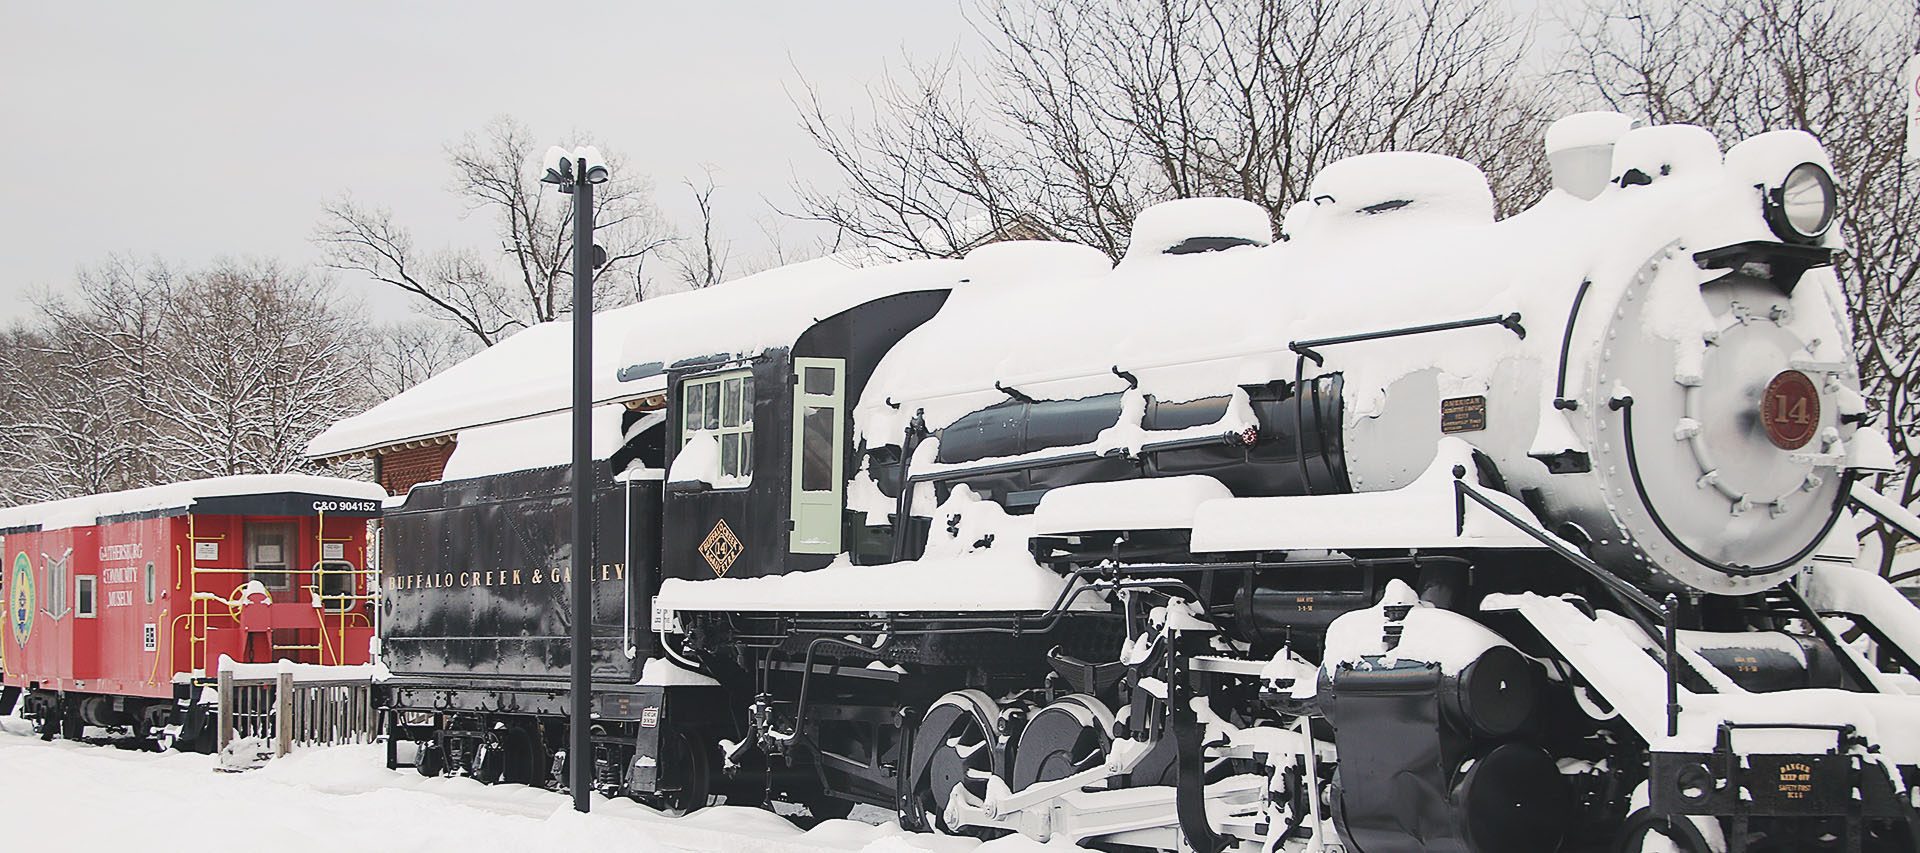 Locomotive in Snow